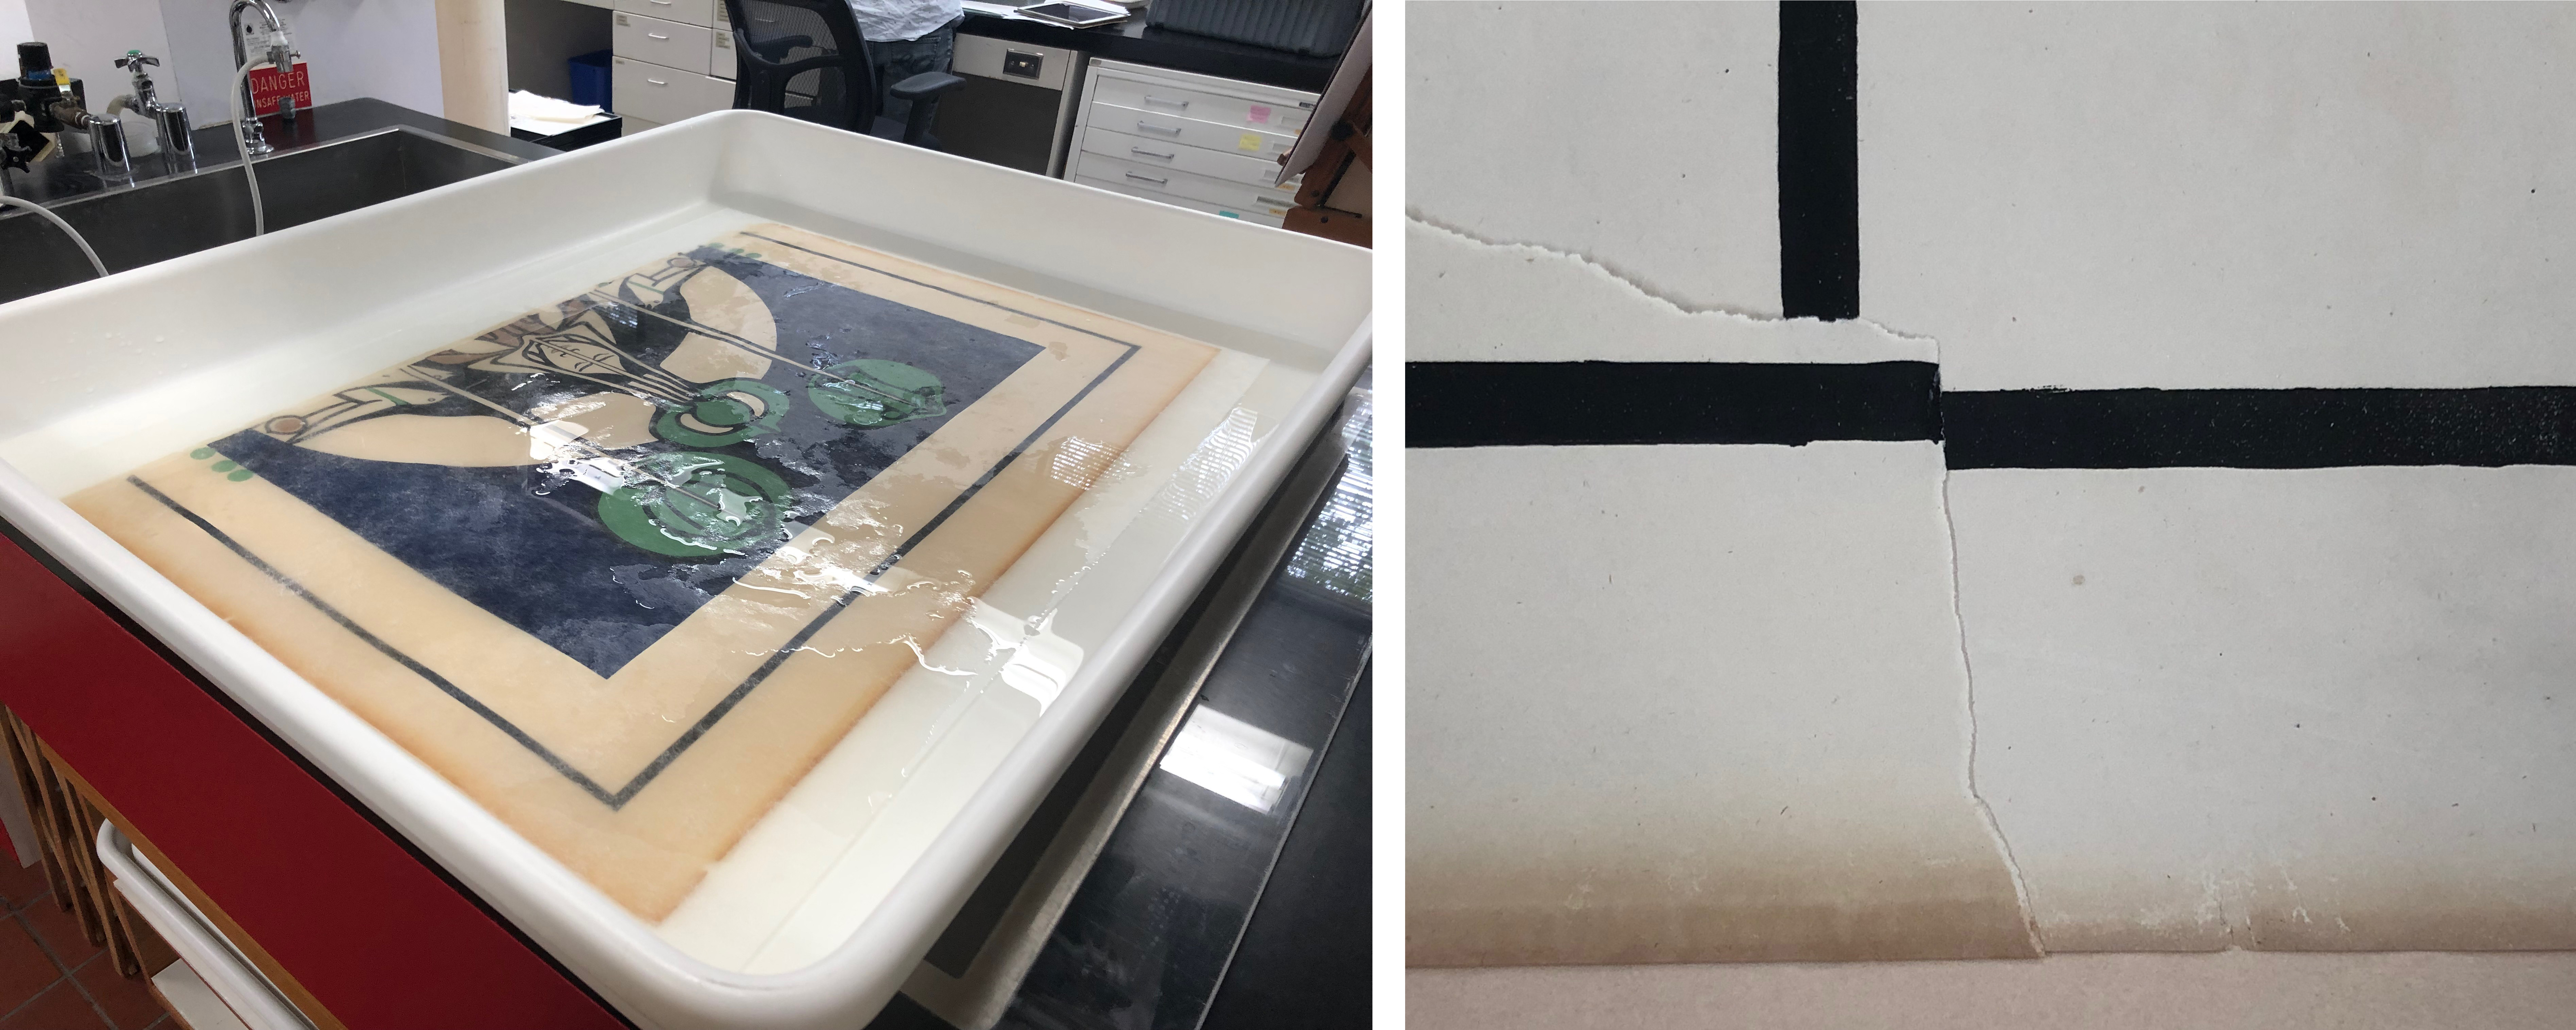 Left: Bathing a panel in filtered pH 7 water, image courtesy of Madison Brockman; Right: Before vs. after bathing process—the paper is brighter, image courtesy of Madison Brockman